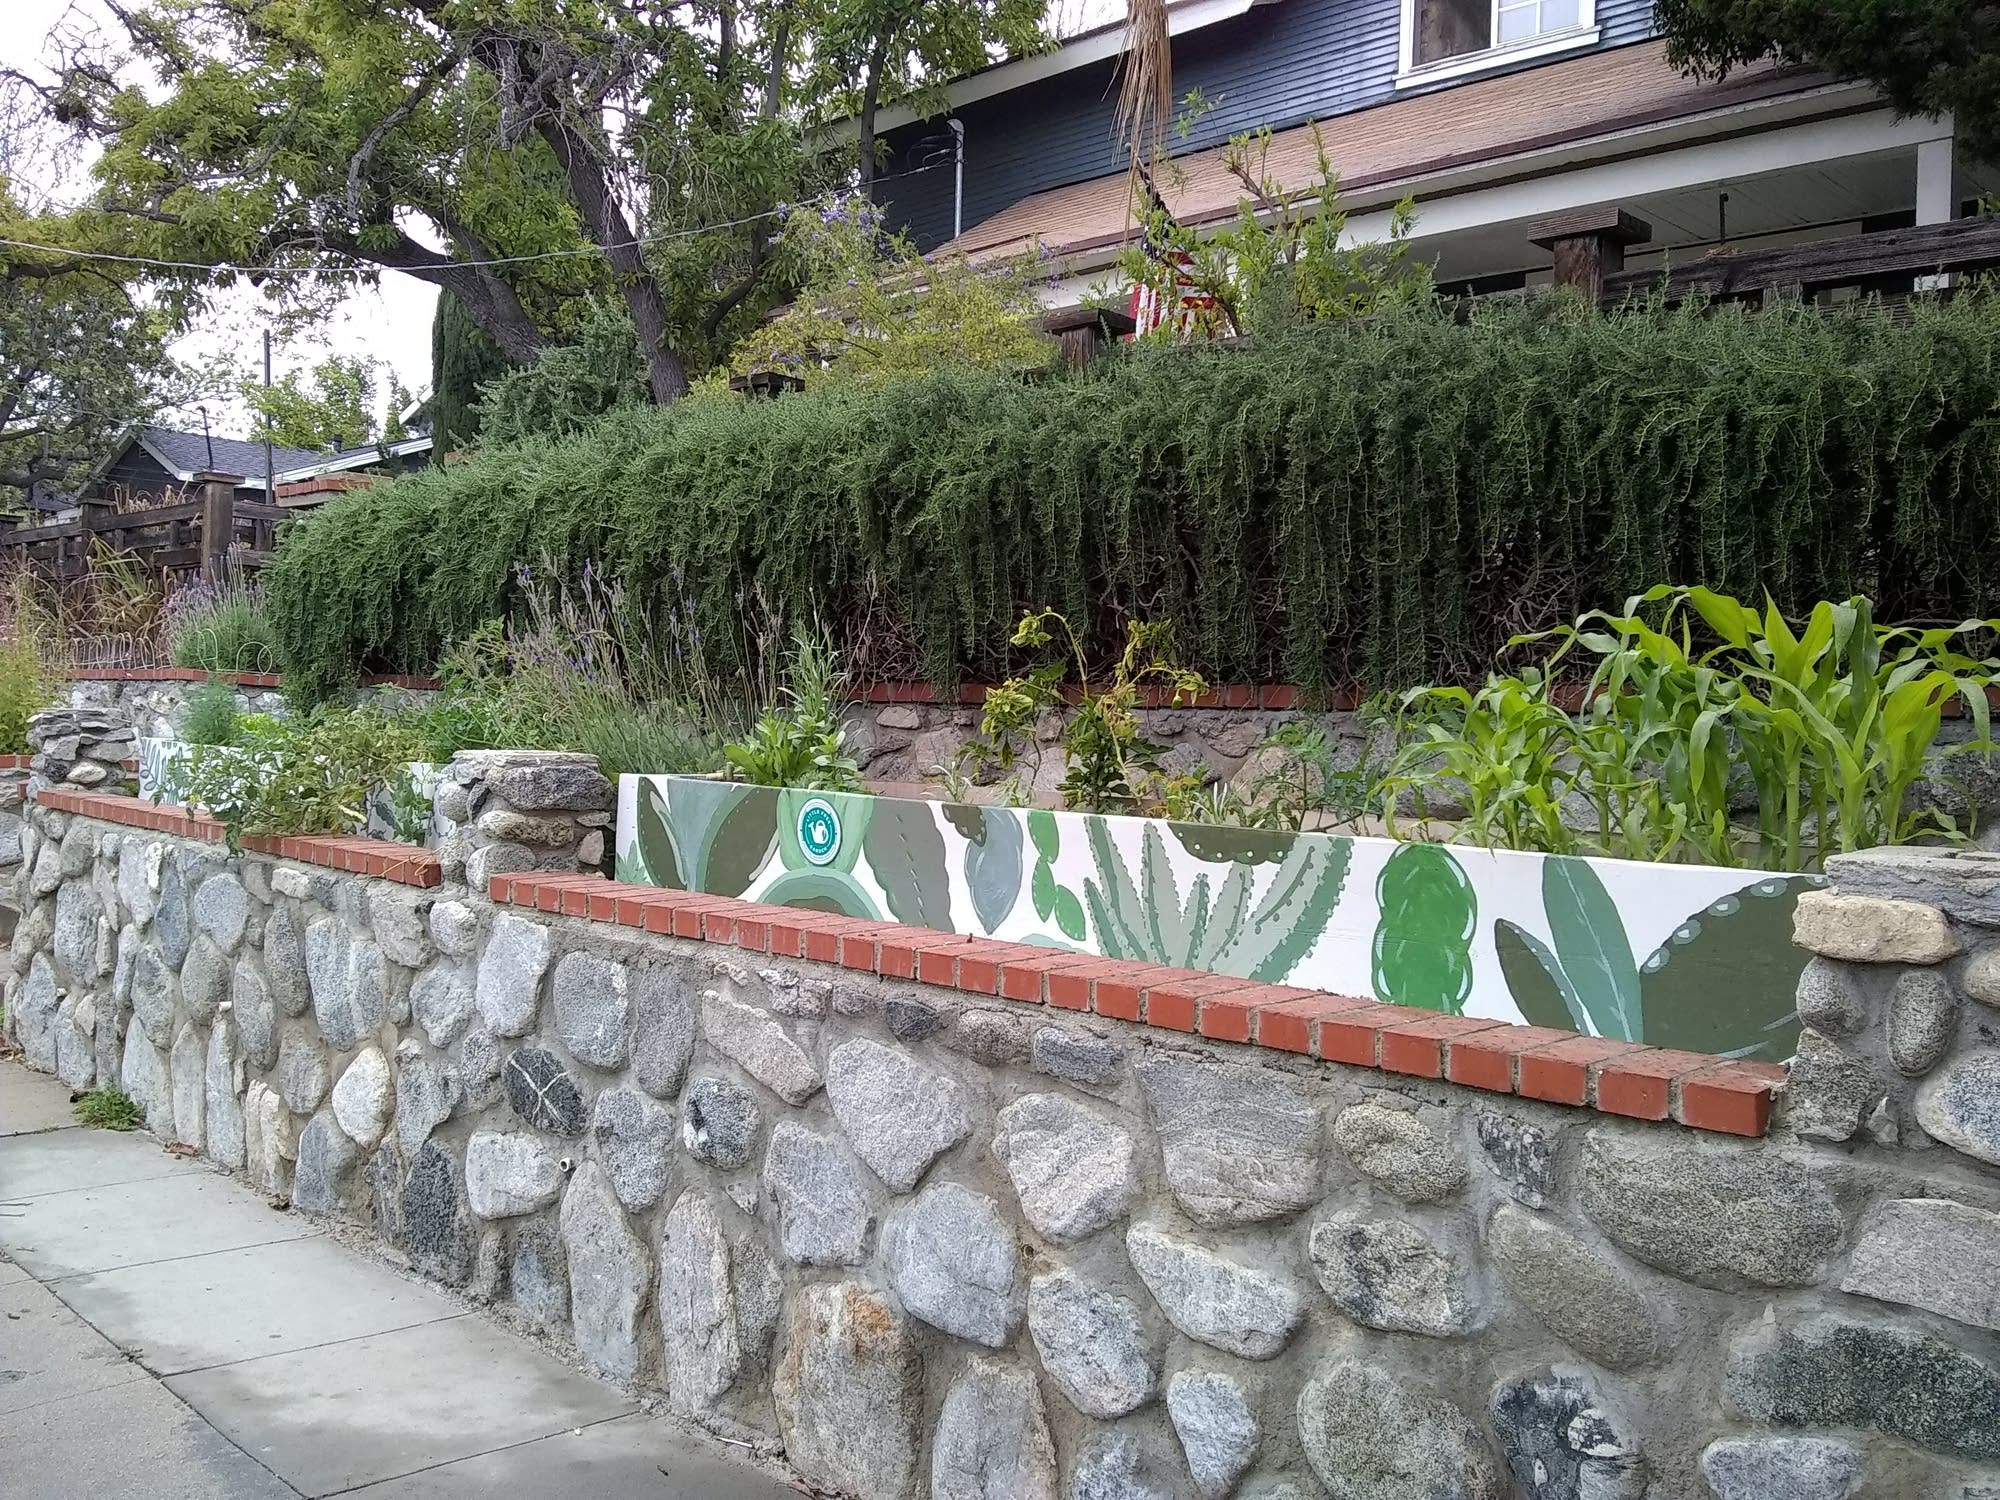 The Little Free Garden in Tina Renzullo's front yard in Pasadena.